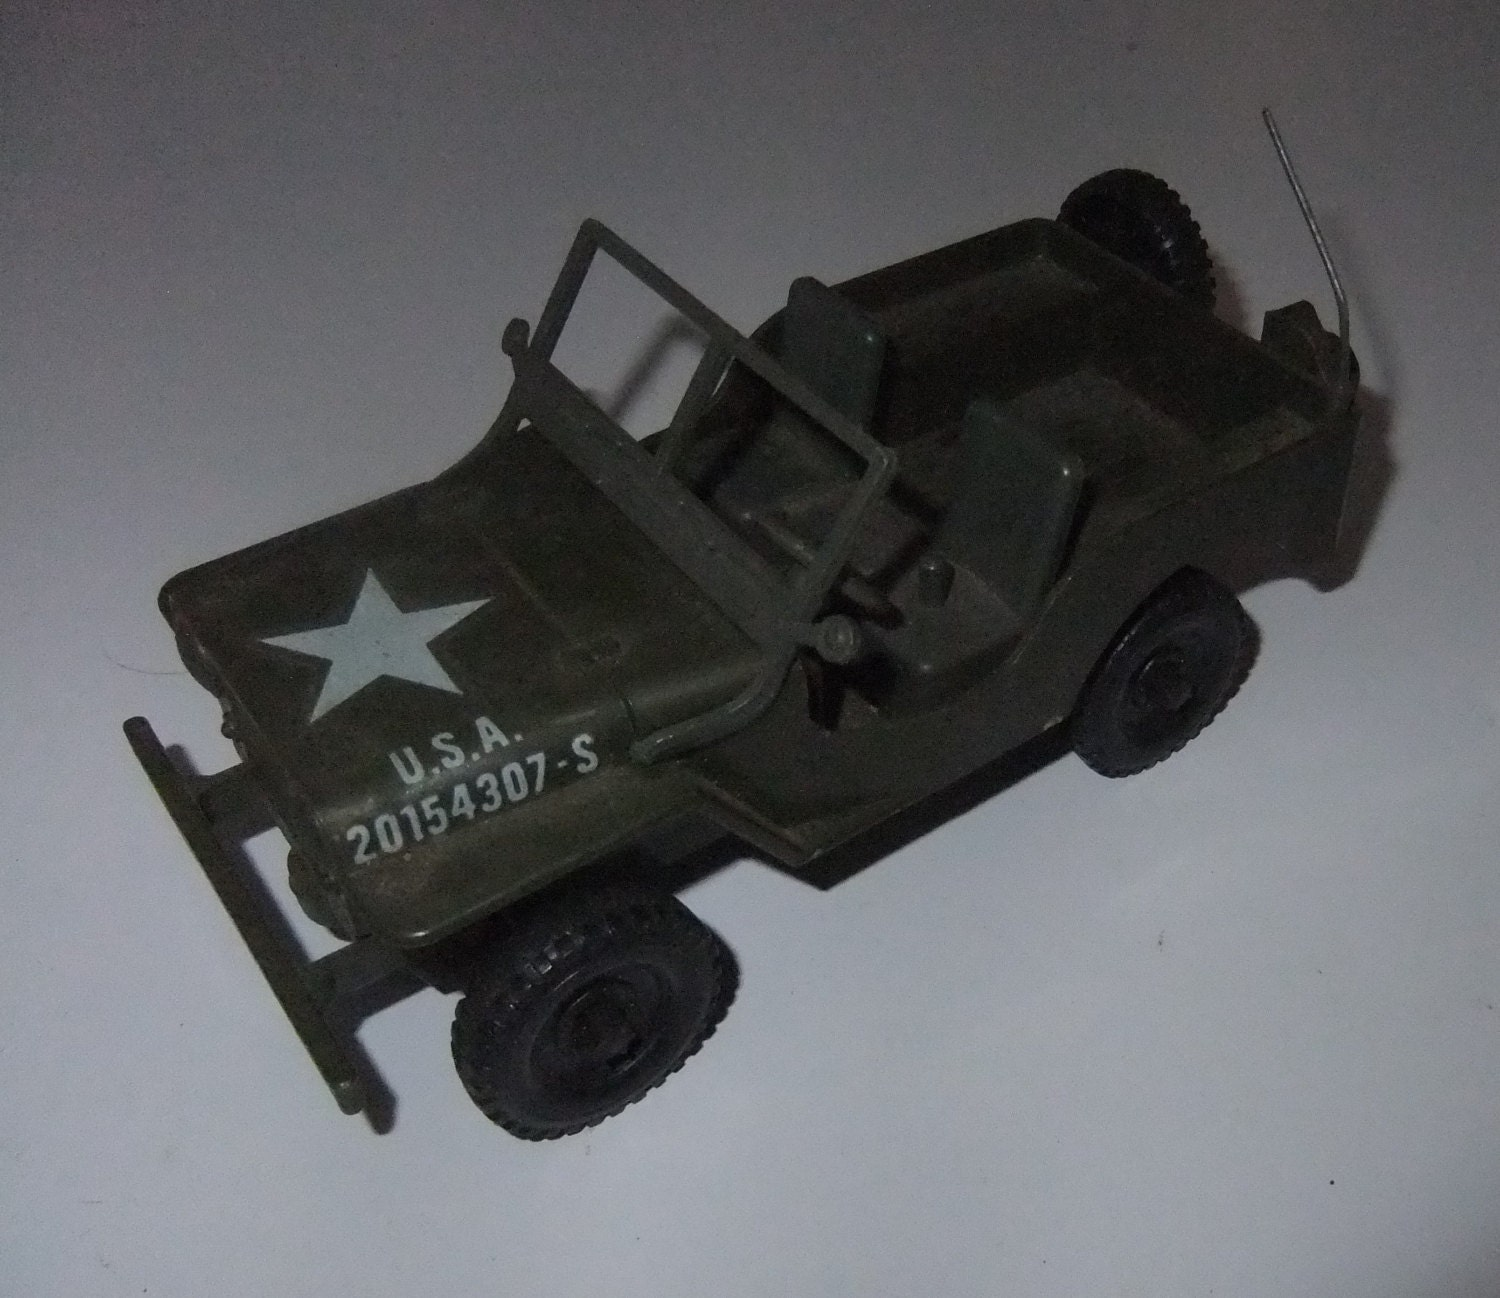 WWII World War 2 Willys US Military Jeep plastic friction vintage c1970s toy made in Hong Kong 20154307S